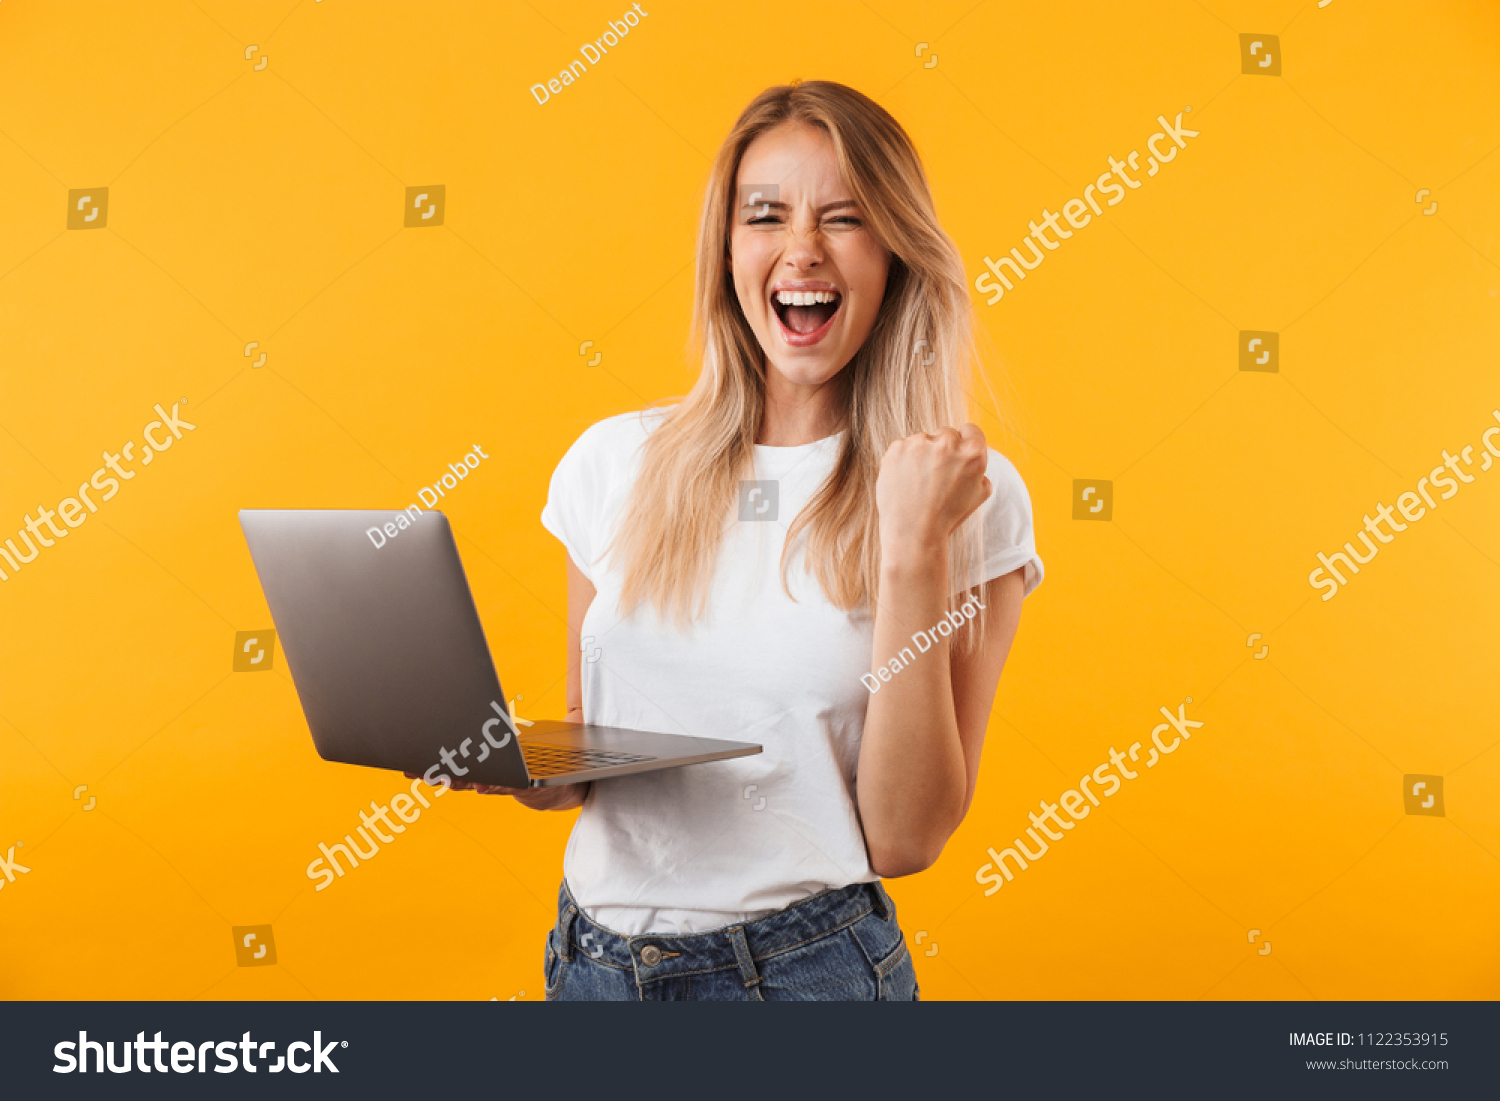 Portrait of an excited young blonde girl holding laptop computer and celebrating success isolated over yellow background #1122353915